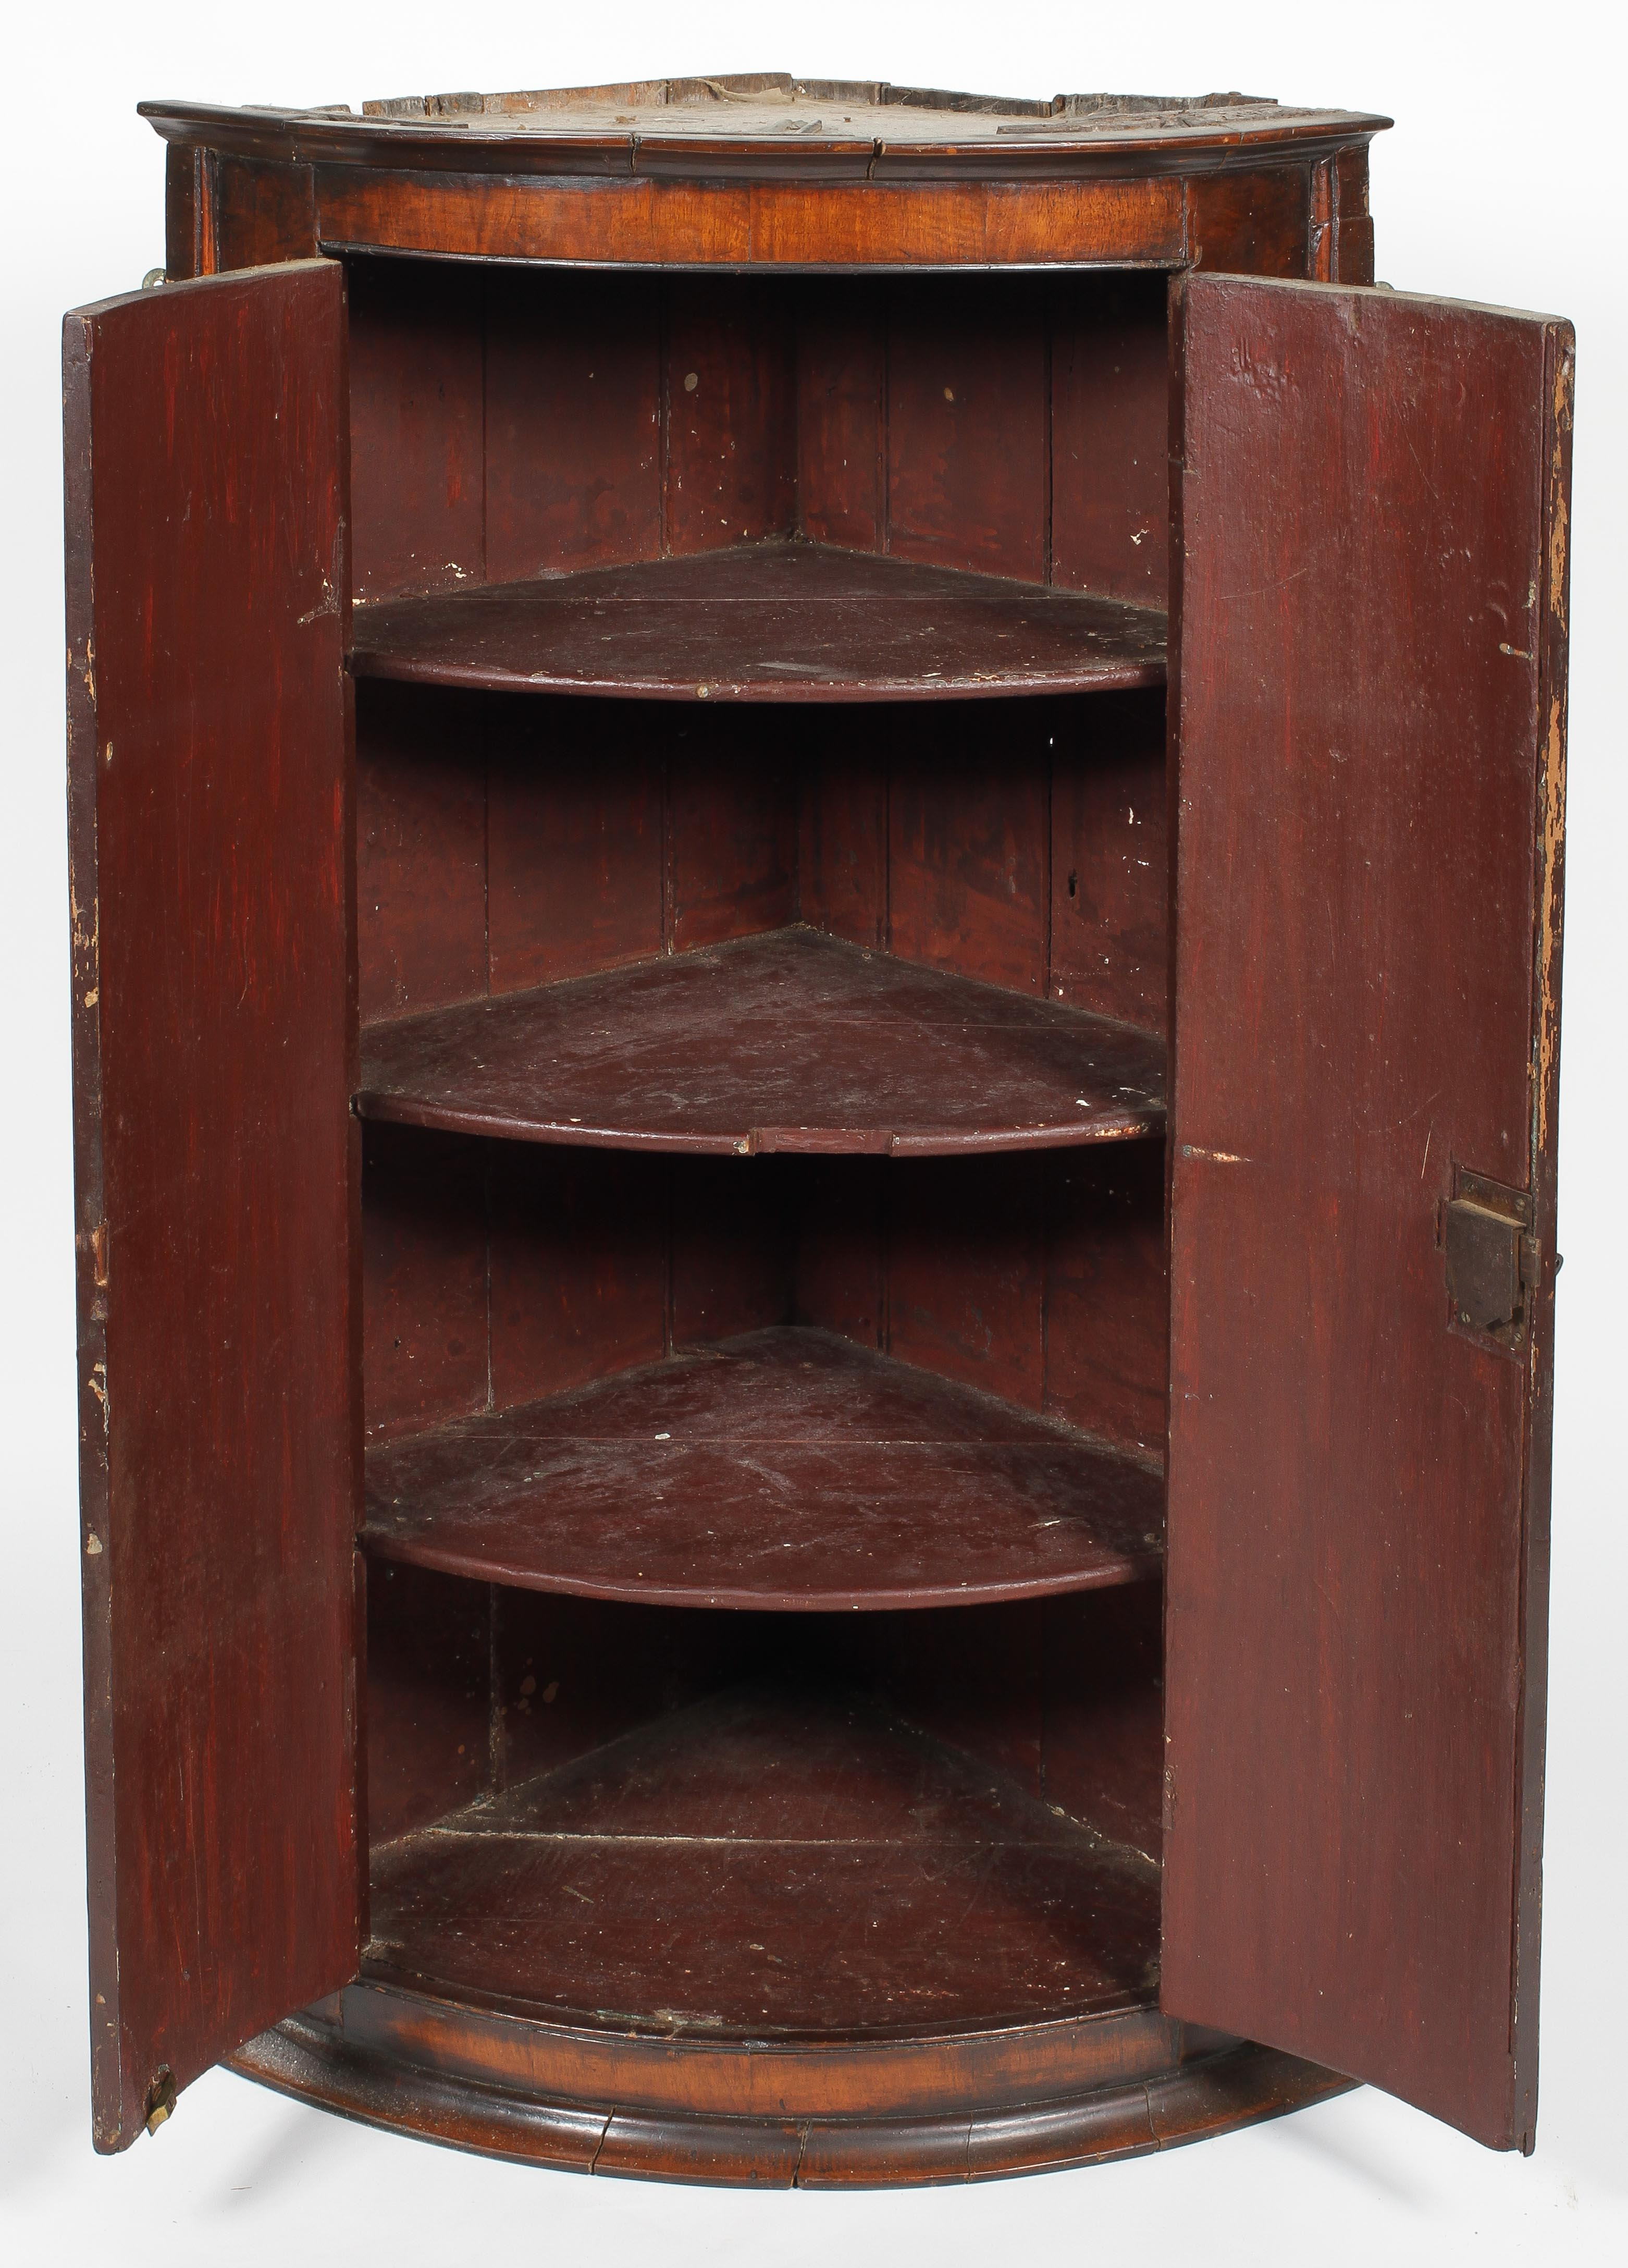 A 19th century walnut corner cupboard, of D-shape section, revealing three shelves, - Image 2 of 2